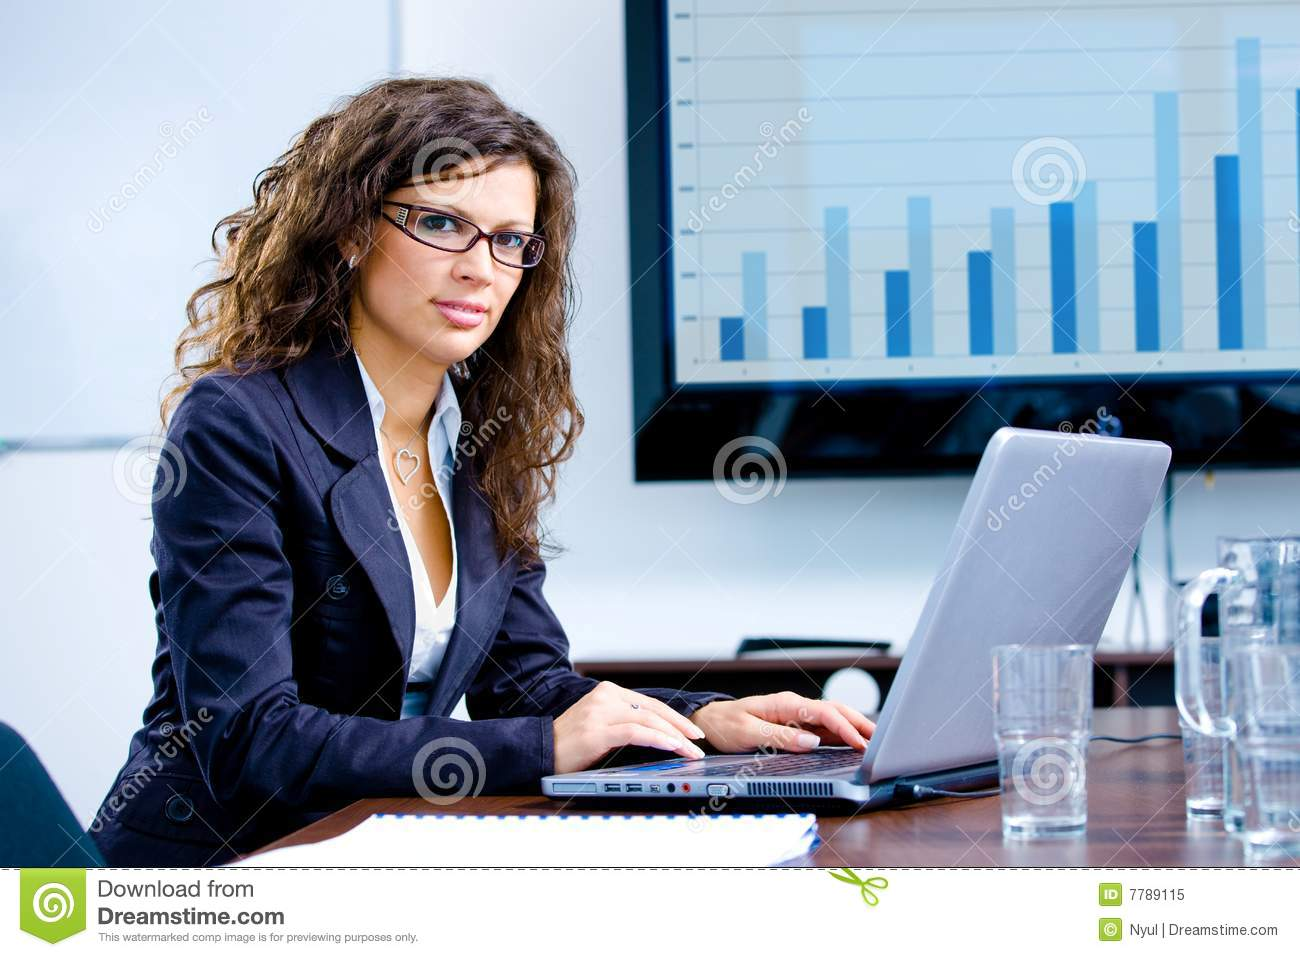 businesswoman-working-computer-7789115.jpg